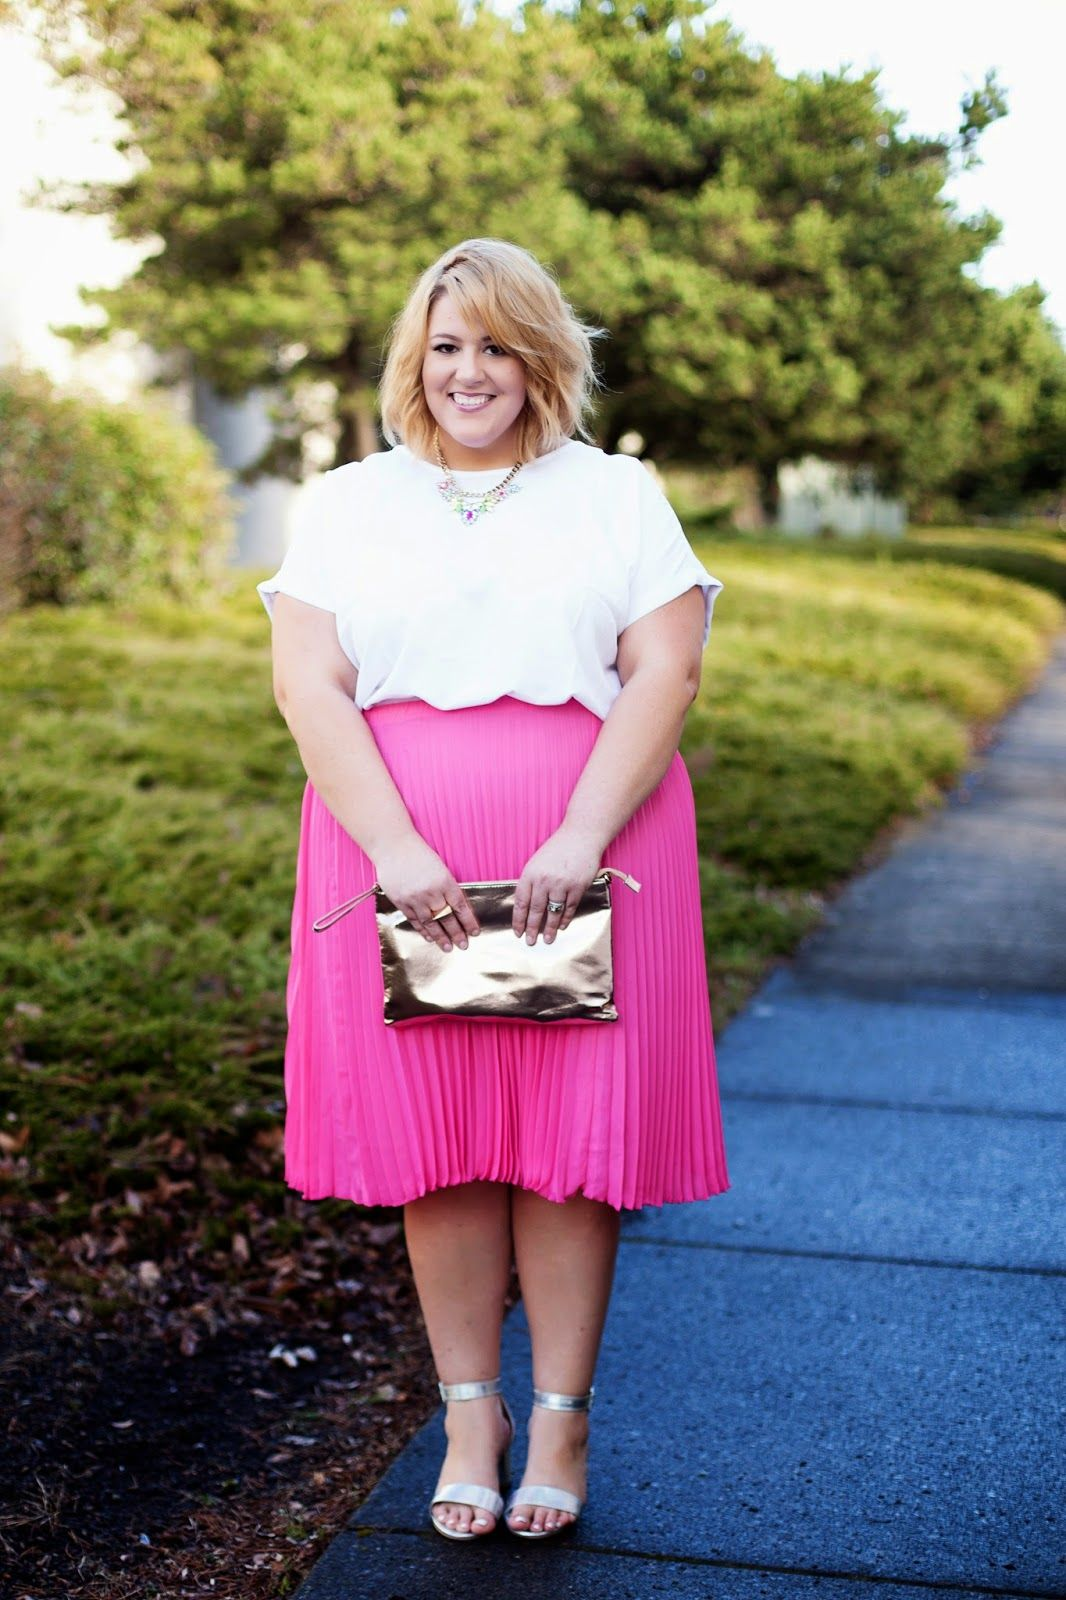 6589c07c9b6 30PlusCurves 30 Something Style OOTD Featuring SimplyBe on a Size 26 28  Plus Size Fashion Blogger Body Jessica Kane